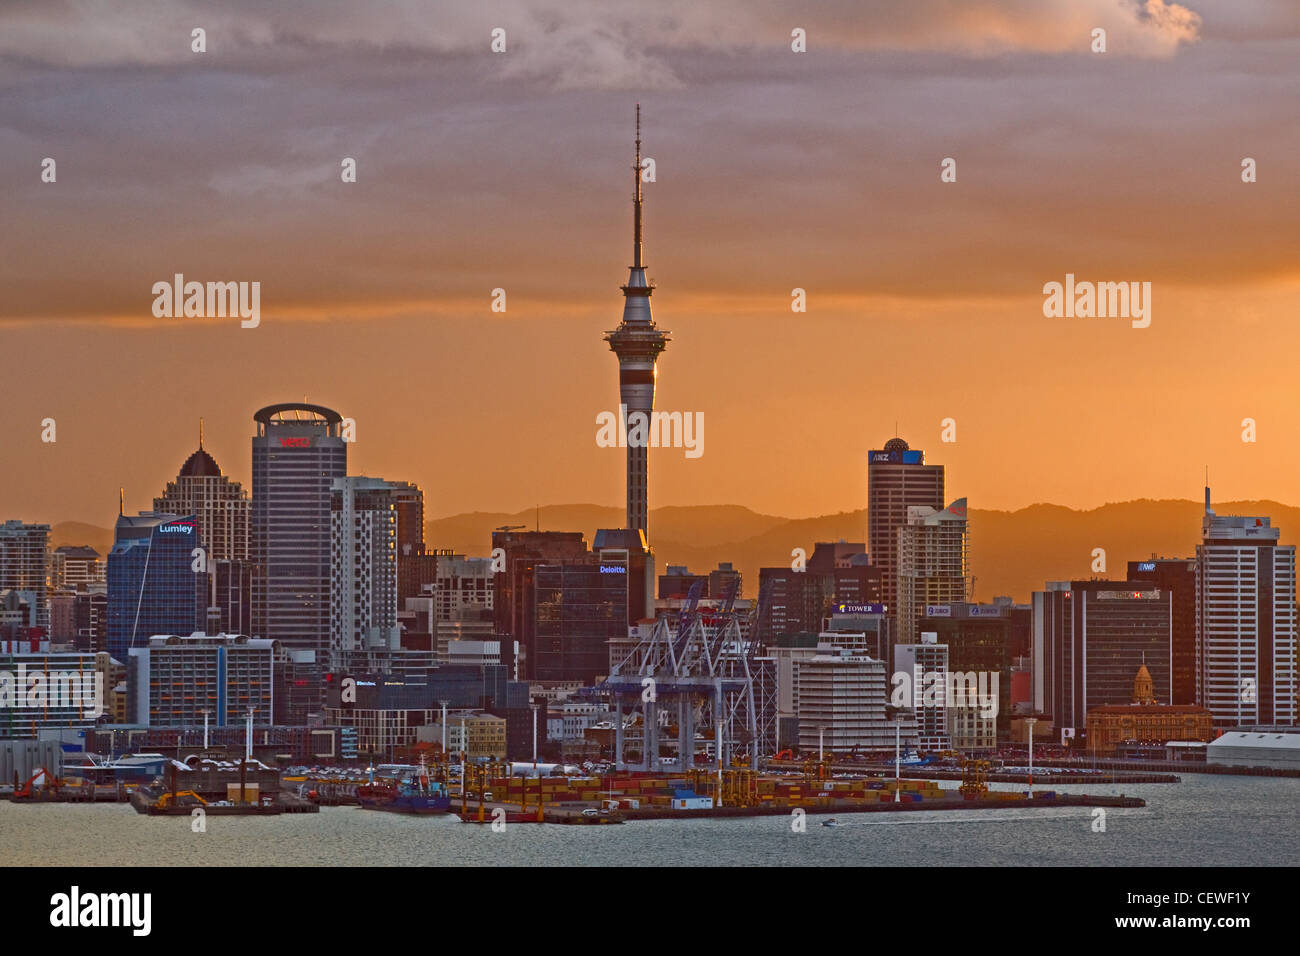 Auckand City Skyline across the harbour to the CBD from Mount Victoria, Auckland, New Zealand - Stock Image